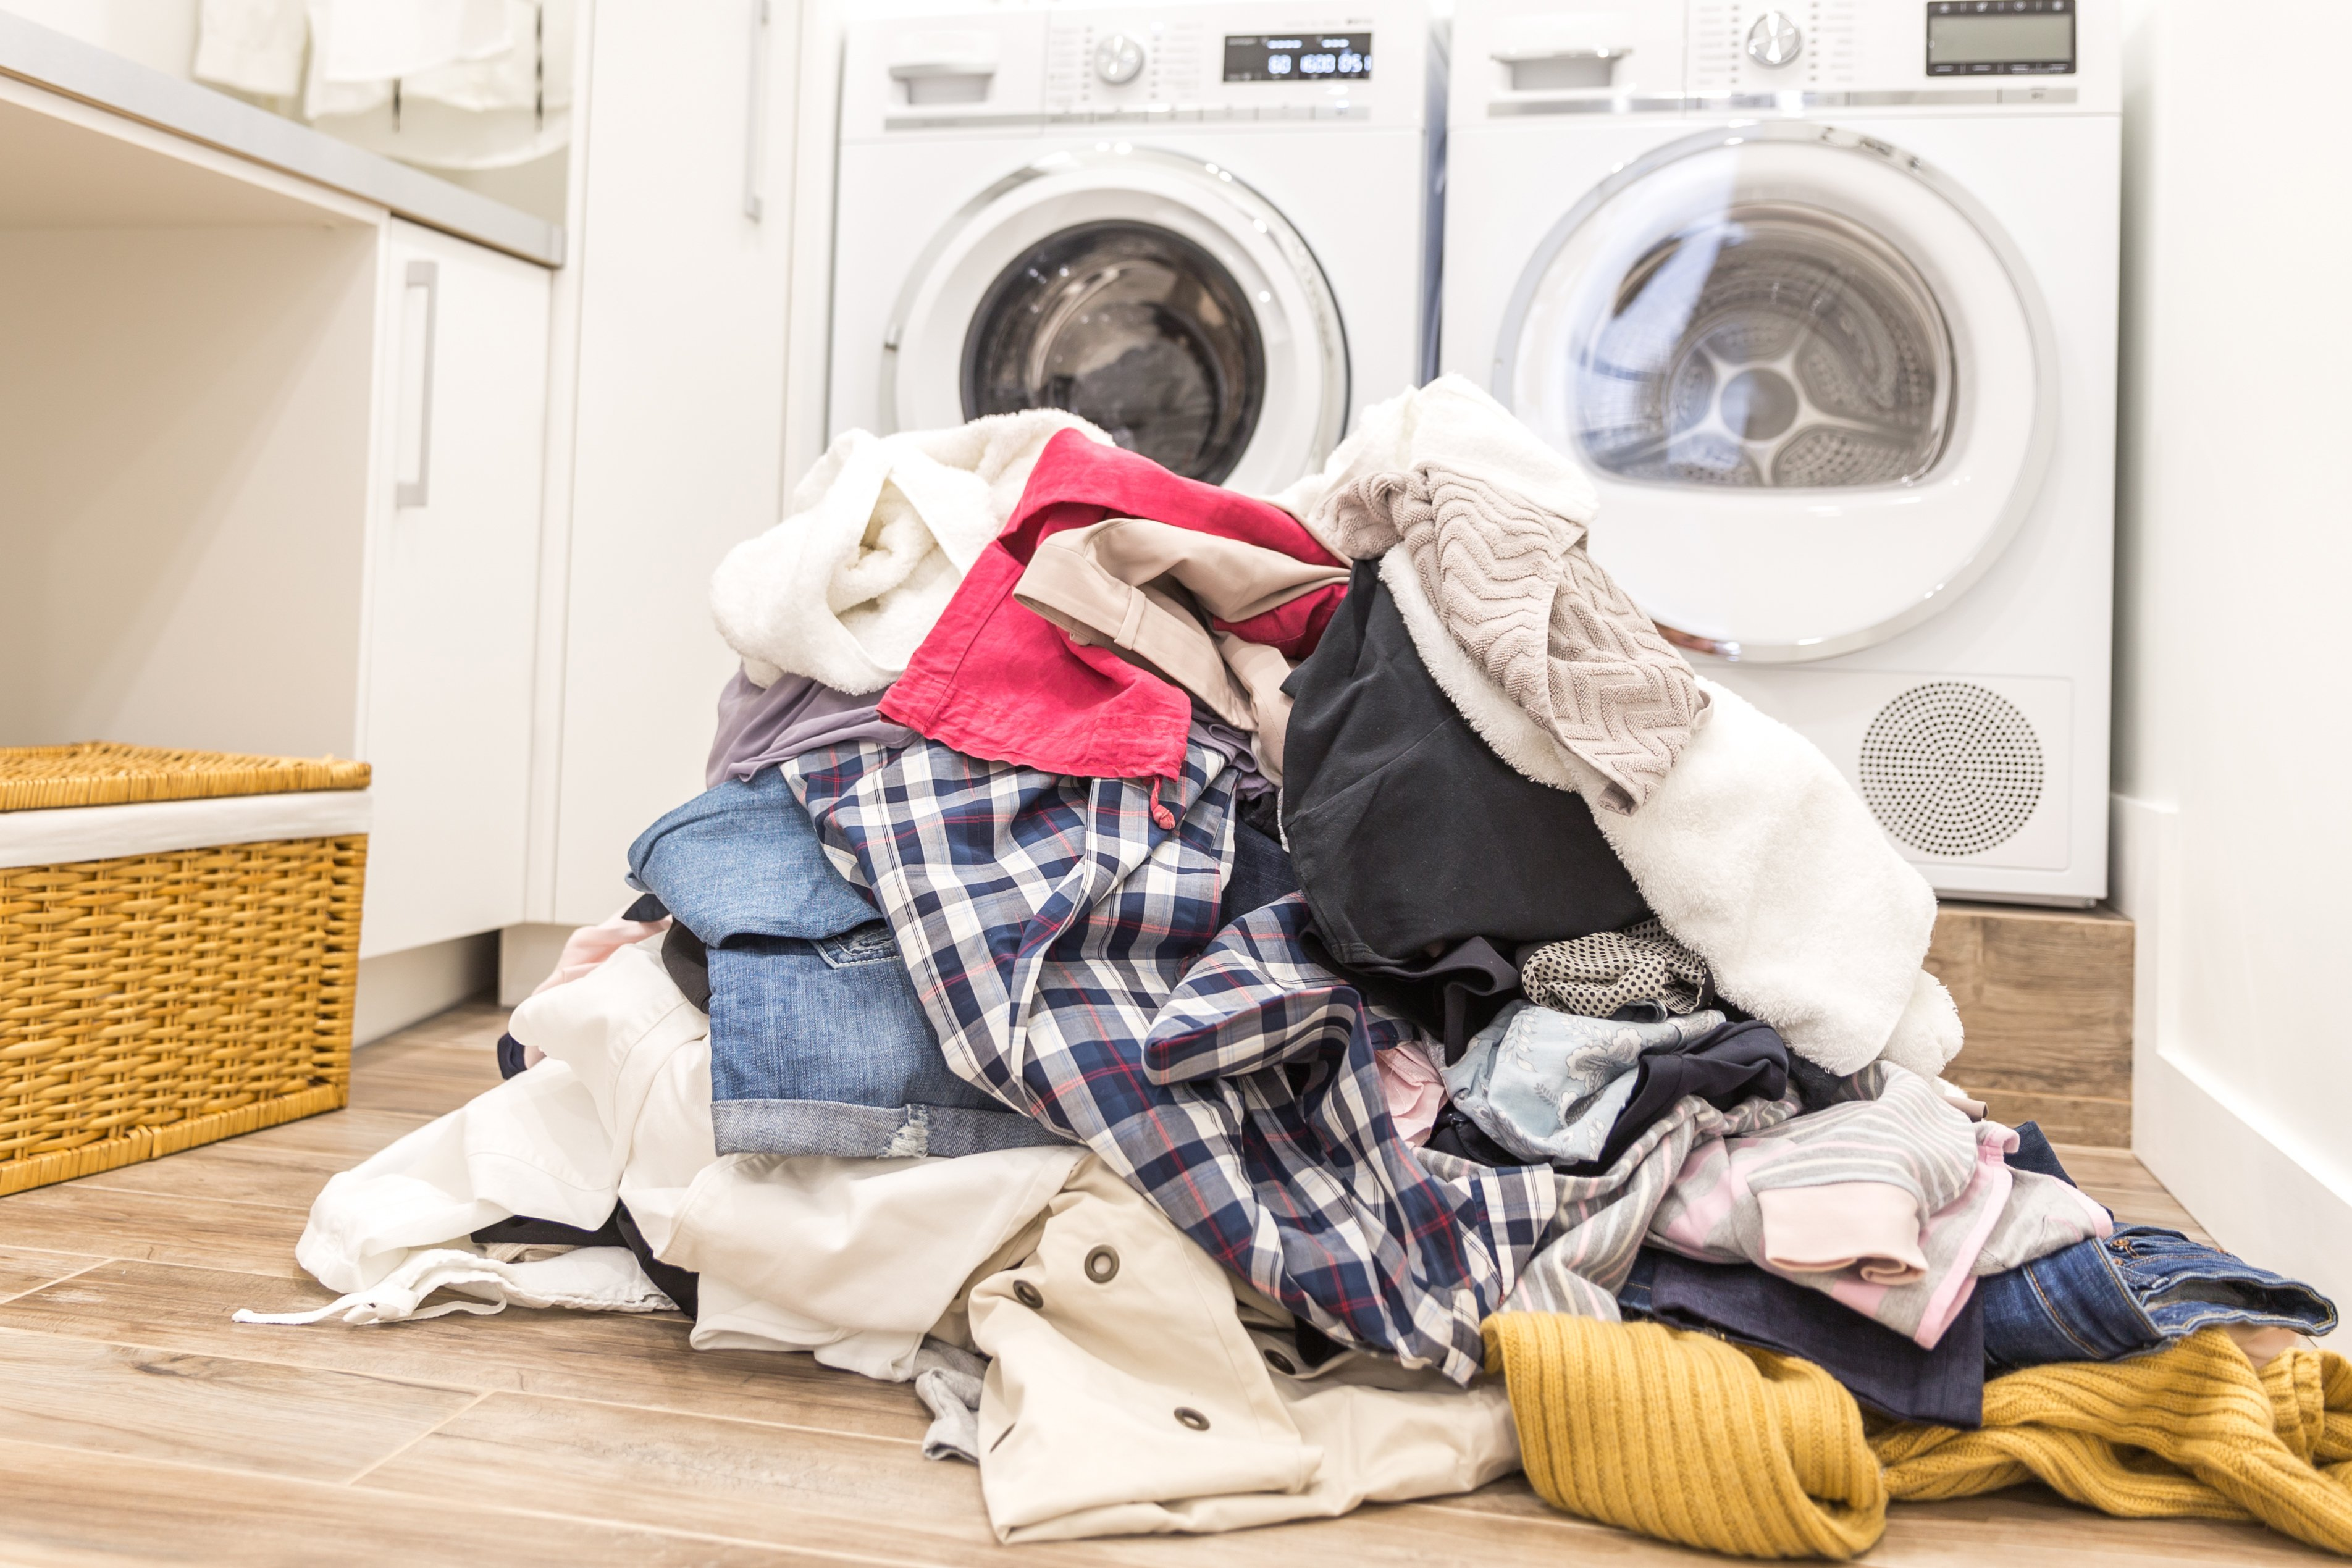 Dirty laundry on the floor. | Photo: Shutterstock